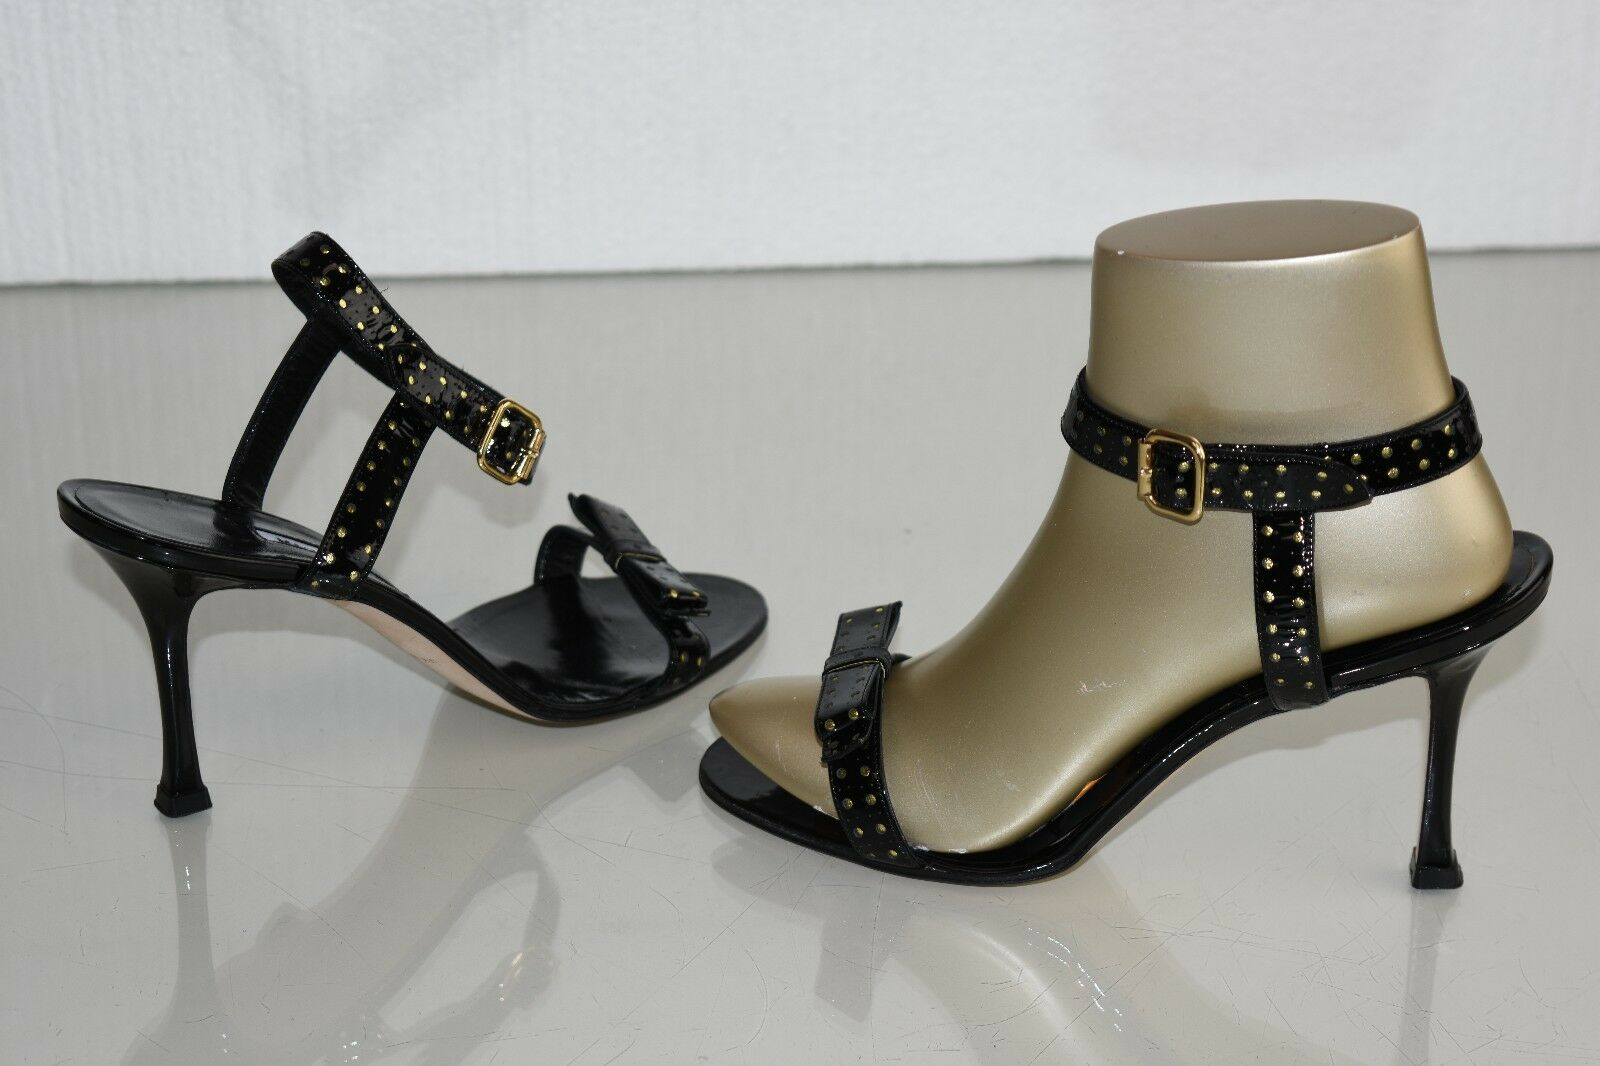 NEW MANOLO BLAHNIK PATENT PERFORATED LEATHER schwarz SANDALS BOW schuhe 40 40.5